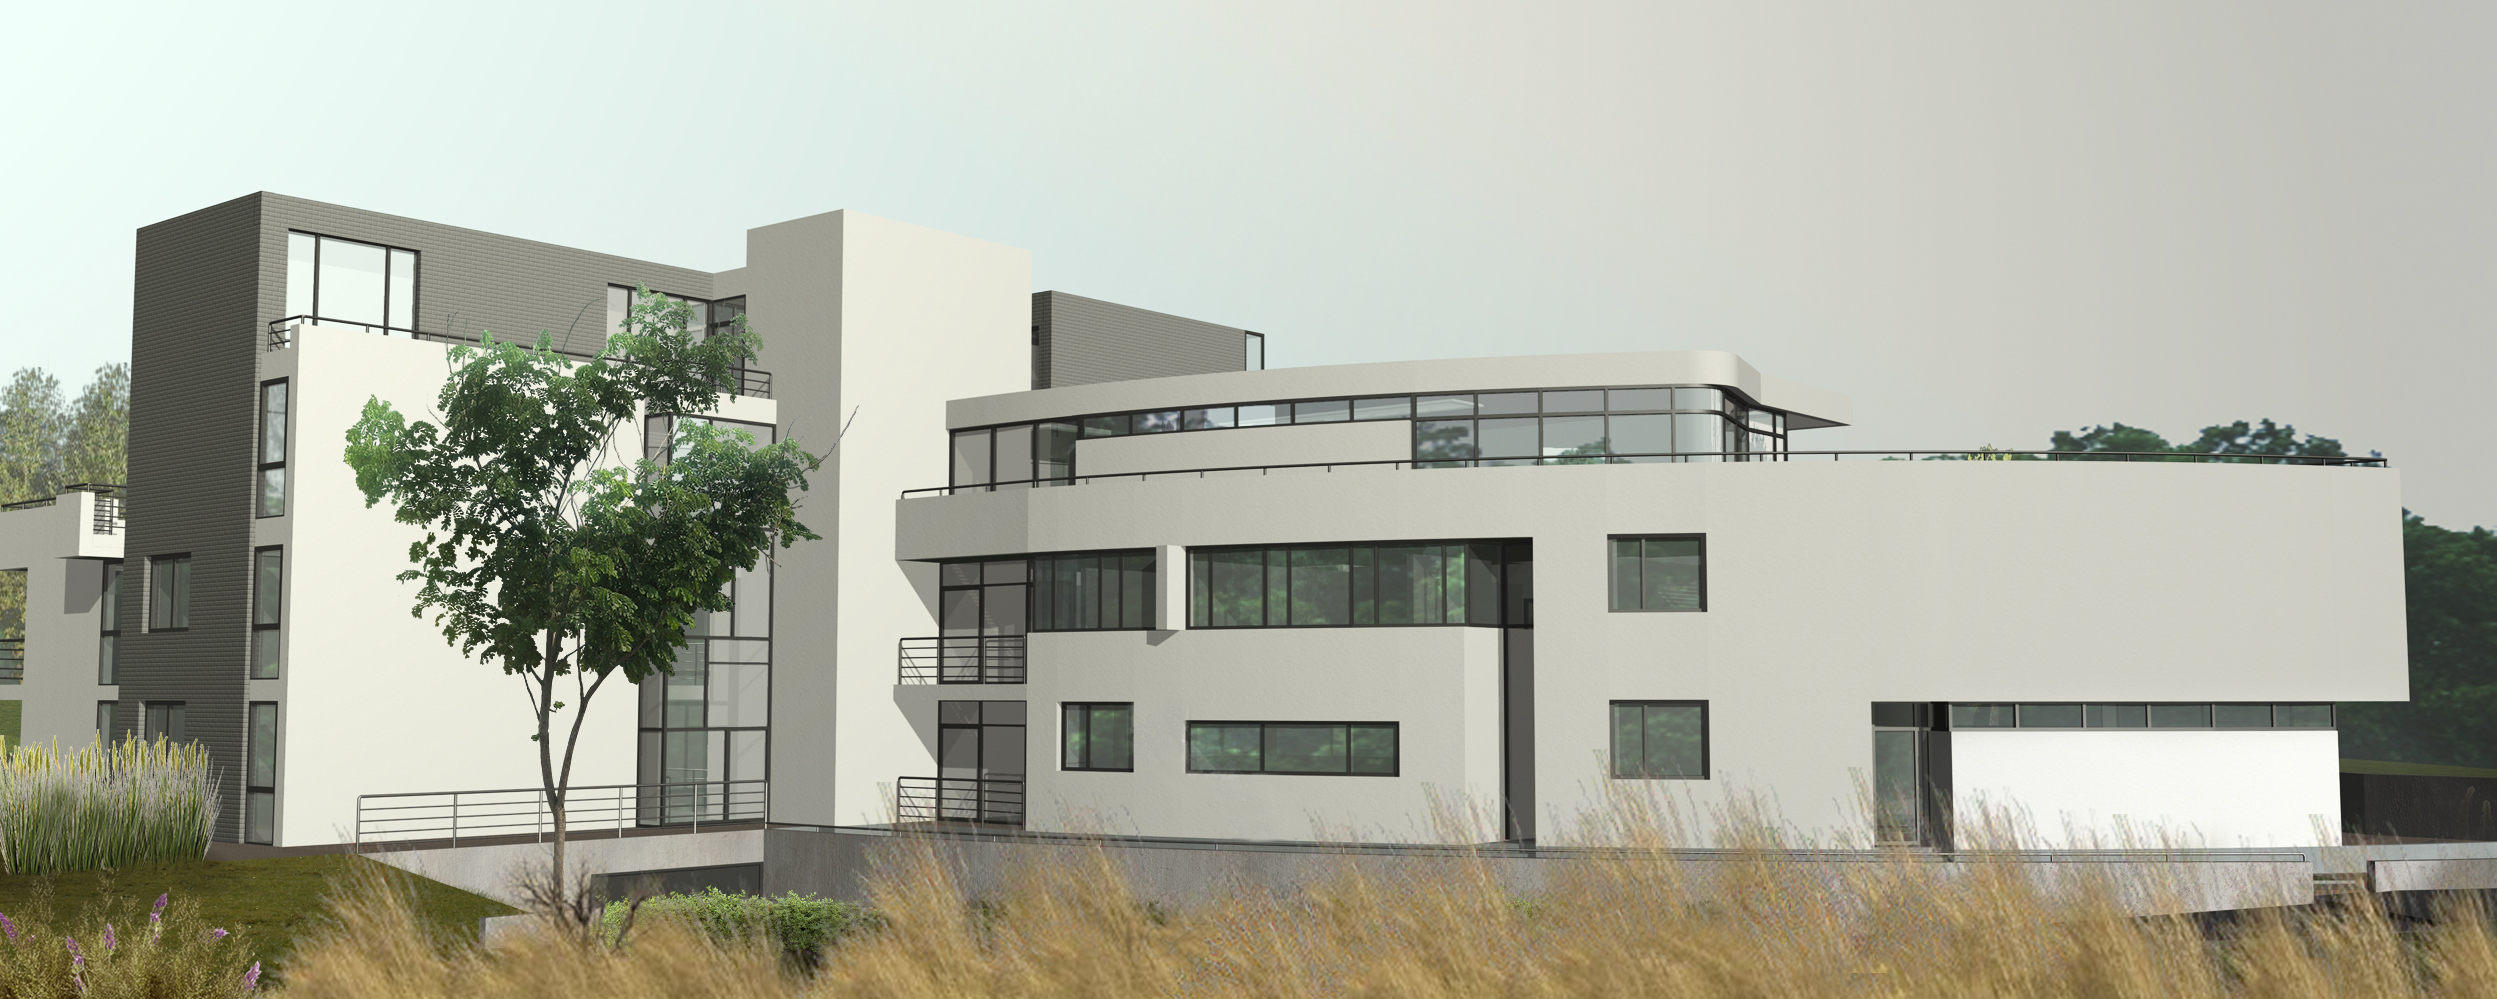 Immeuble appartements uccle eric willemart studio for L architecture moderne plan